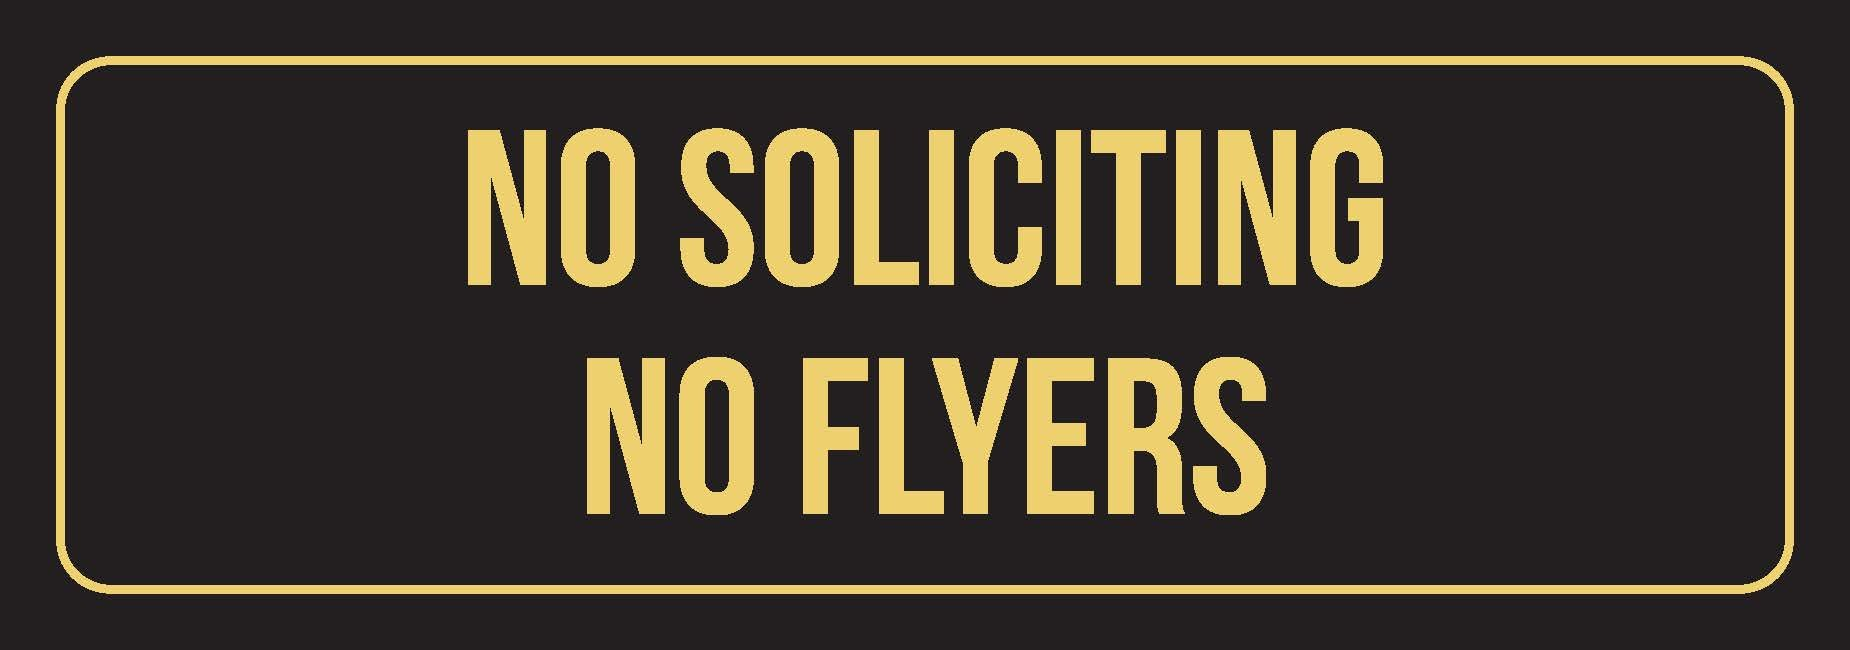 Black Background With Gold Font No Soliciting No Flyers Outdoor & Indoor Metal Wall Sign - Single, 3x9 Inch